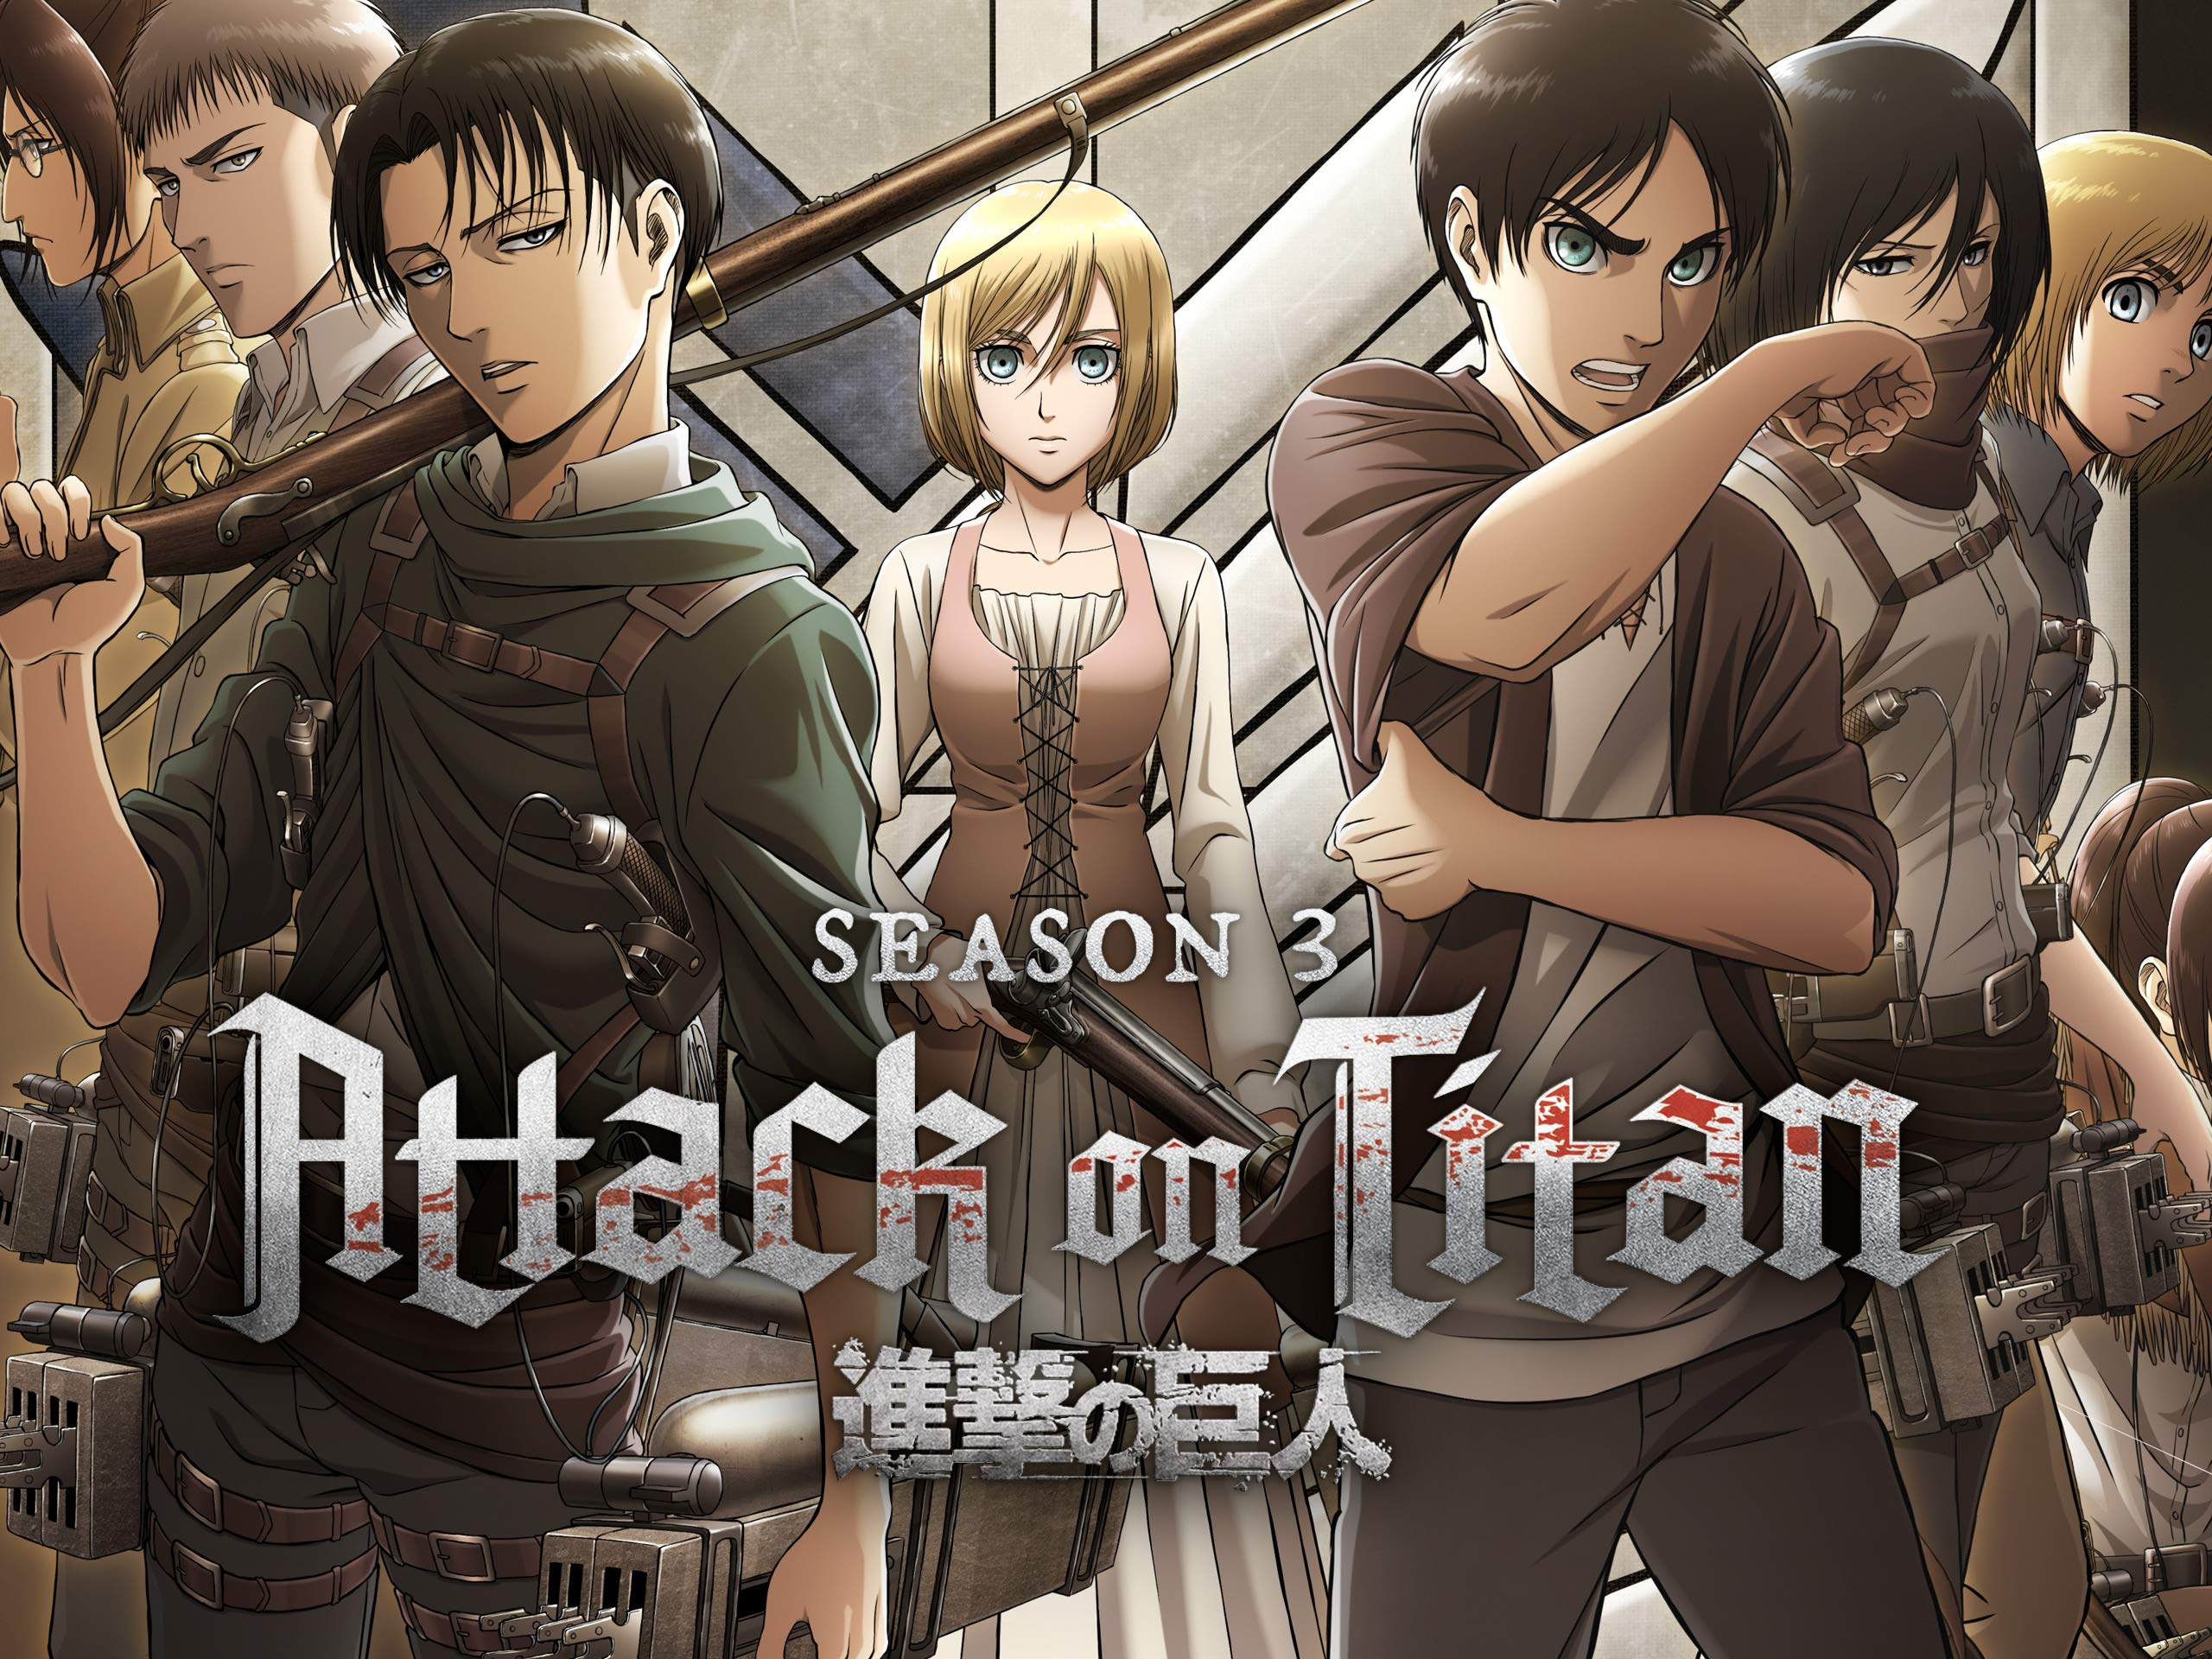 attack on titan staffel 2 ger sub stream